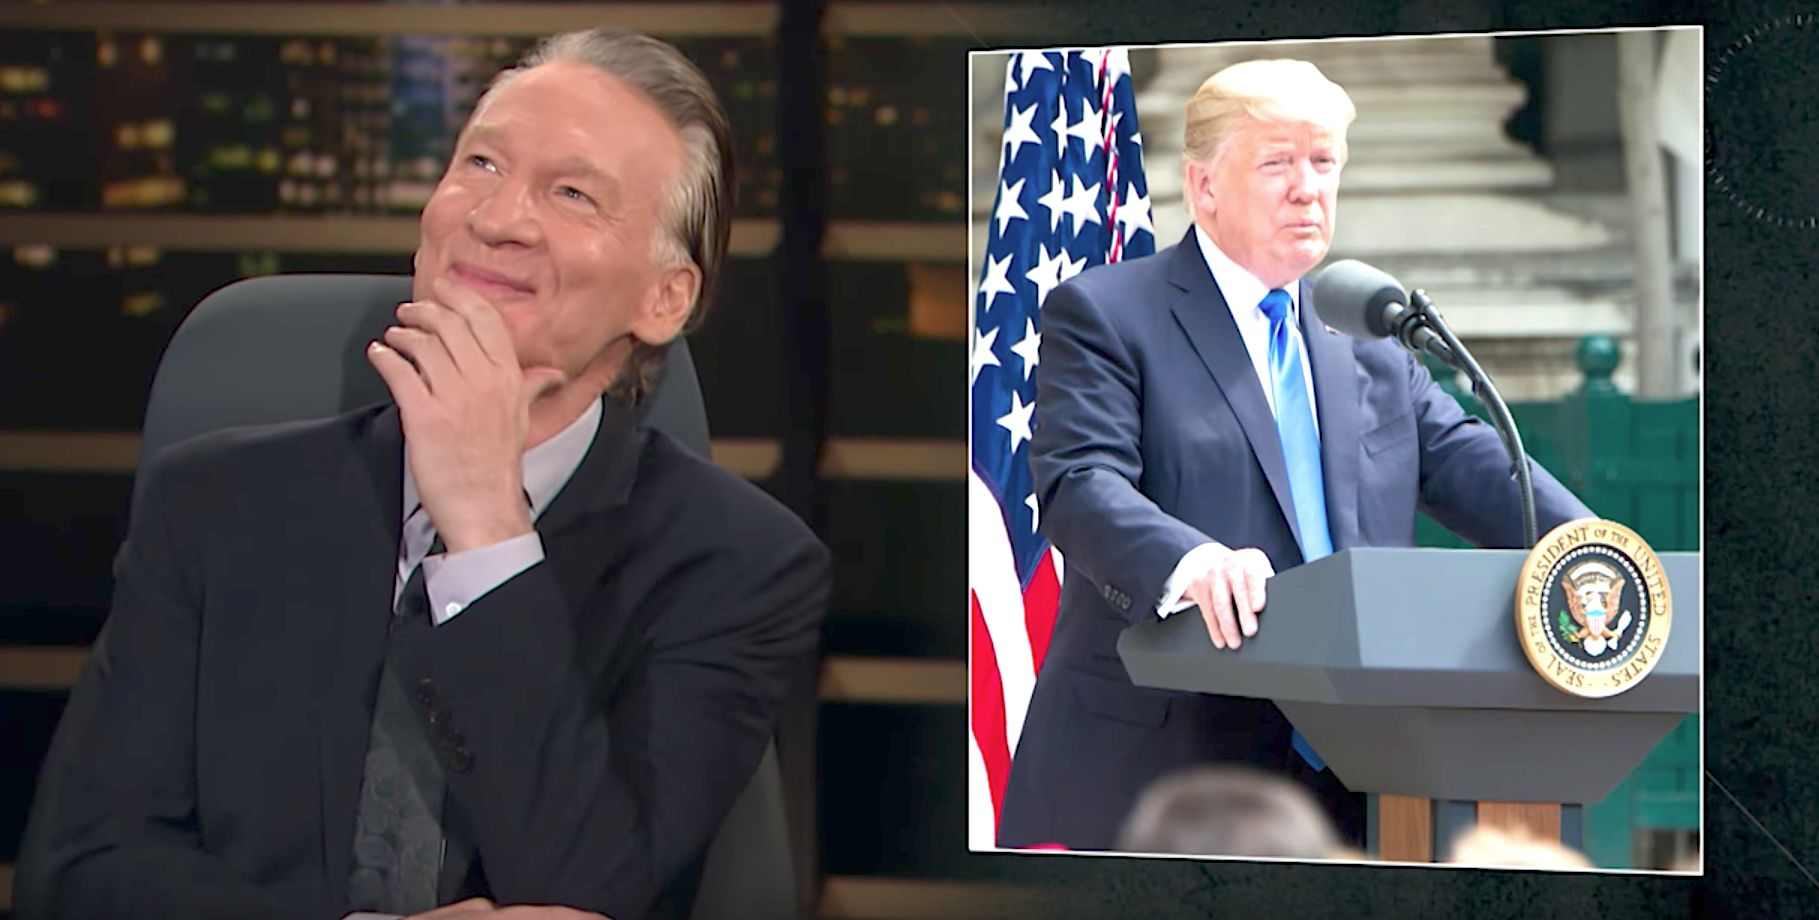 Bill Maher Gives 'A Christmas Carol' Glimpse At 'Scrooge' Donald Trump's Alternate Life